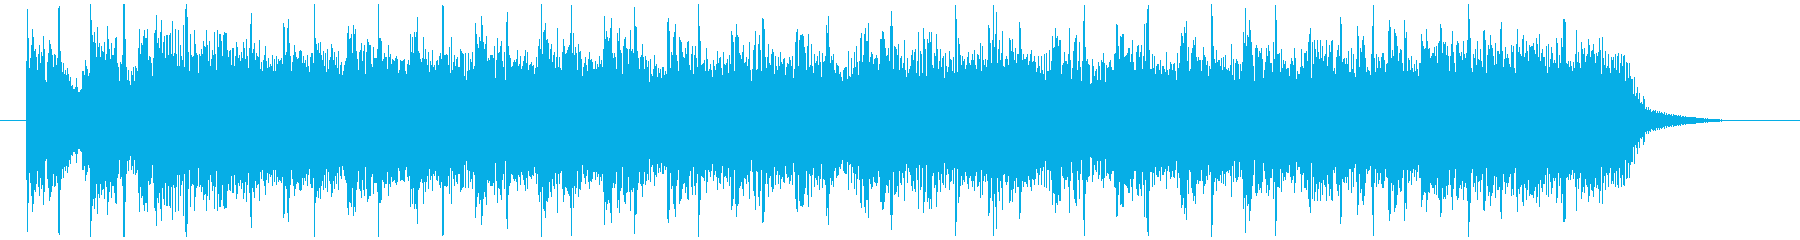 Jingle 6 | Rock for soccer and sports's reproduced waveform